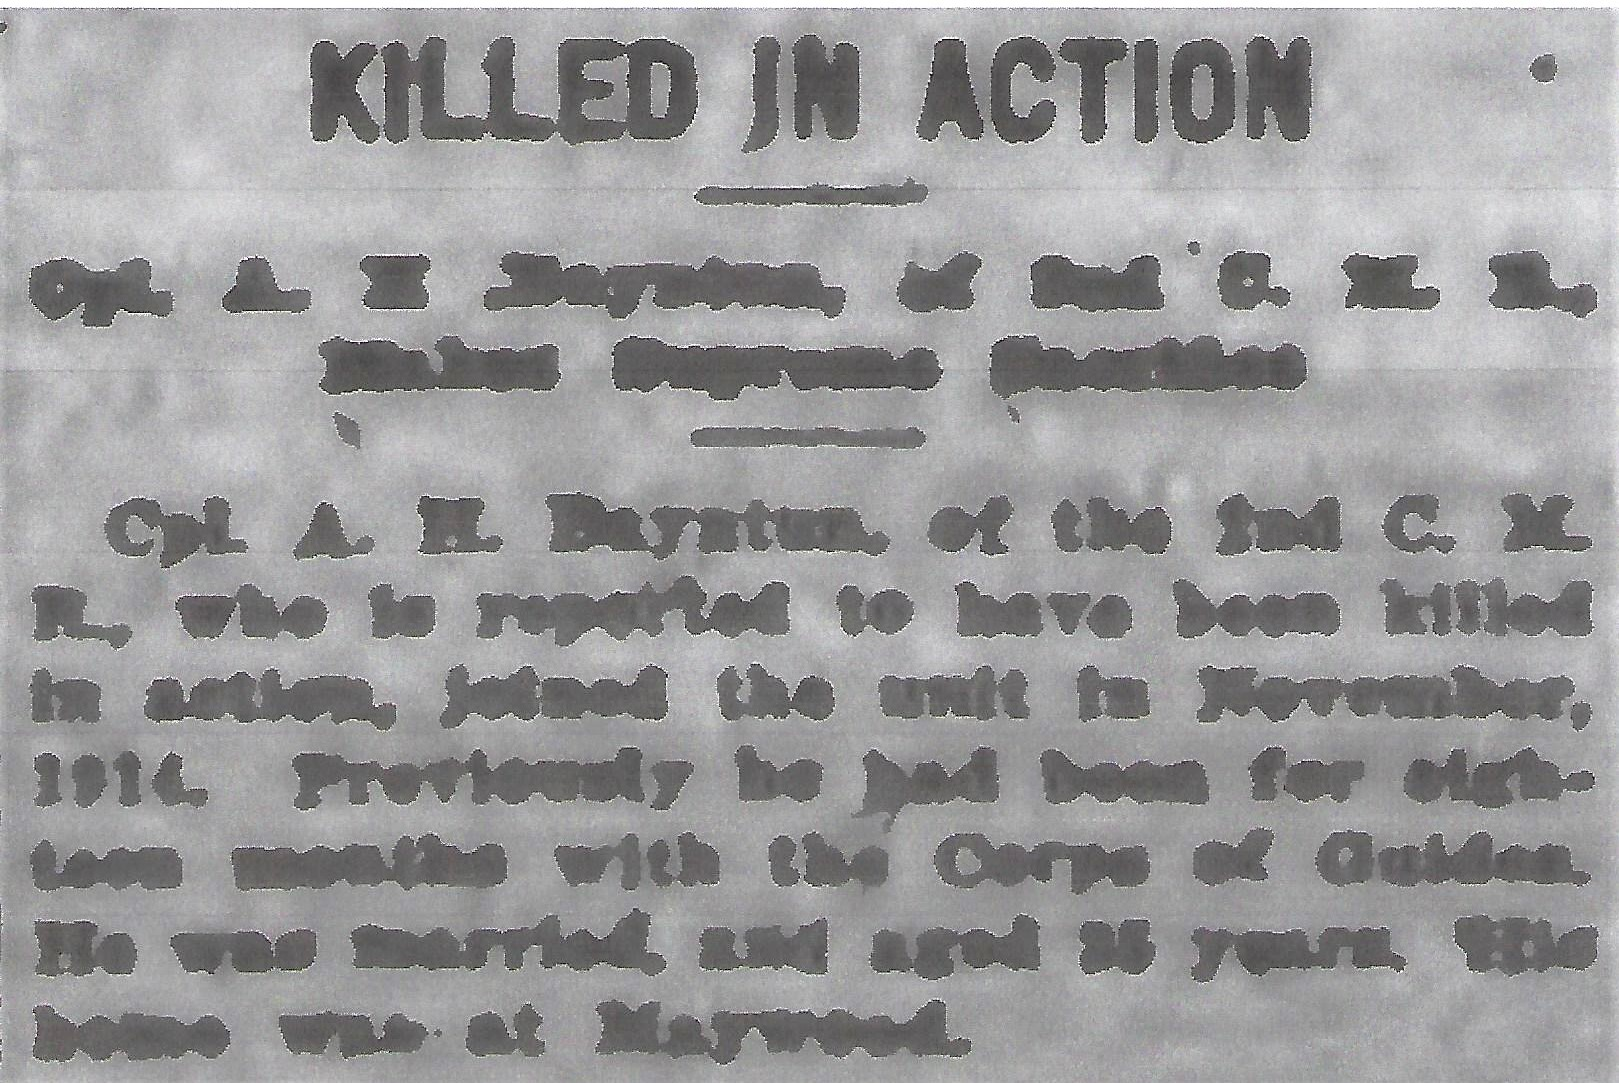 Newspaper clipping– From the Daily Colonist of April 4, 1916. Image taken from web address of